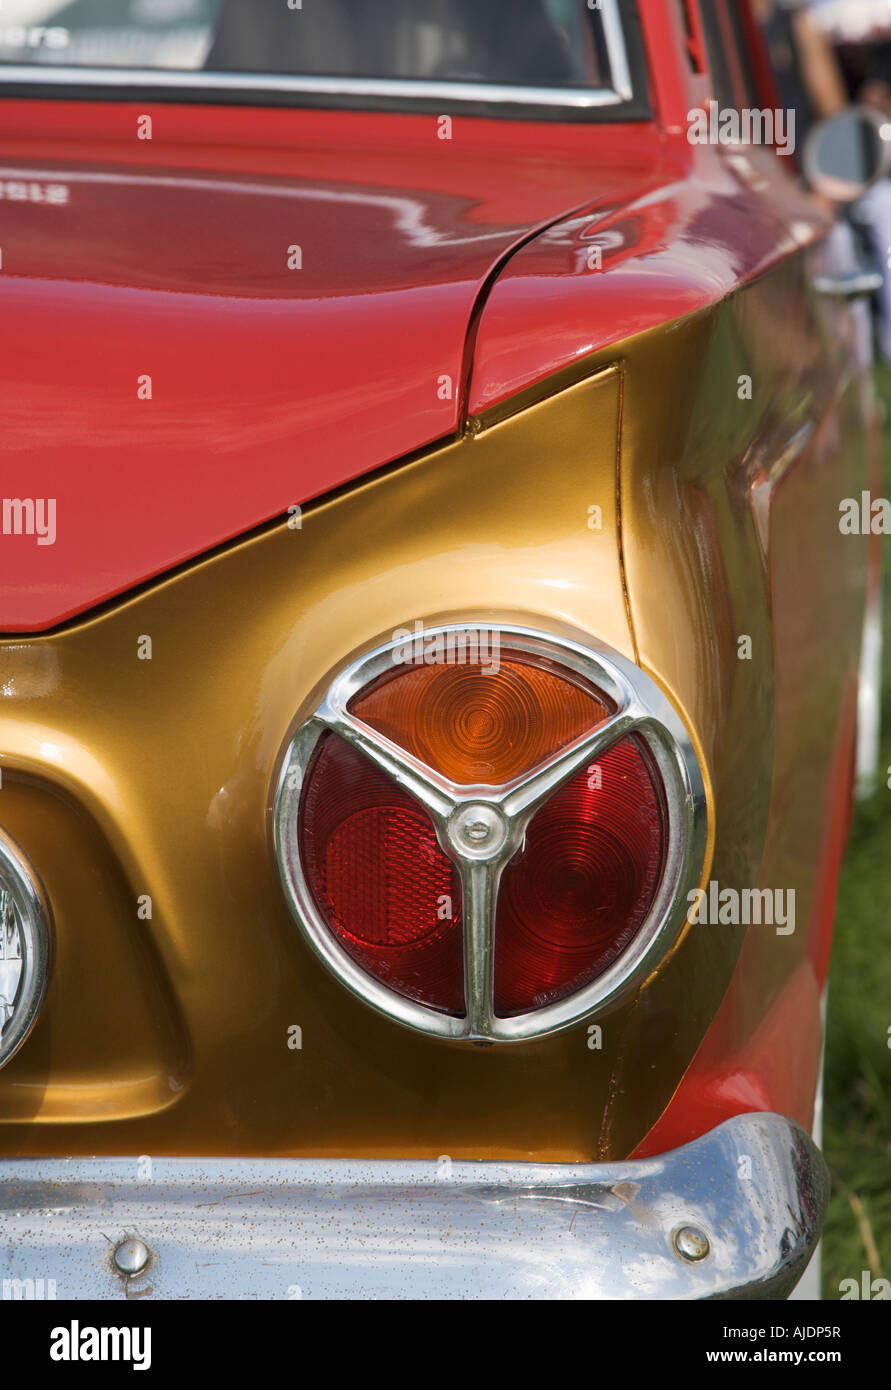 Rear Light Cluster Of Vintage Ford Cortina Car Stock Image